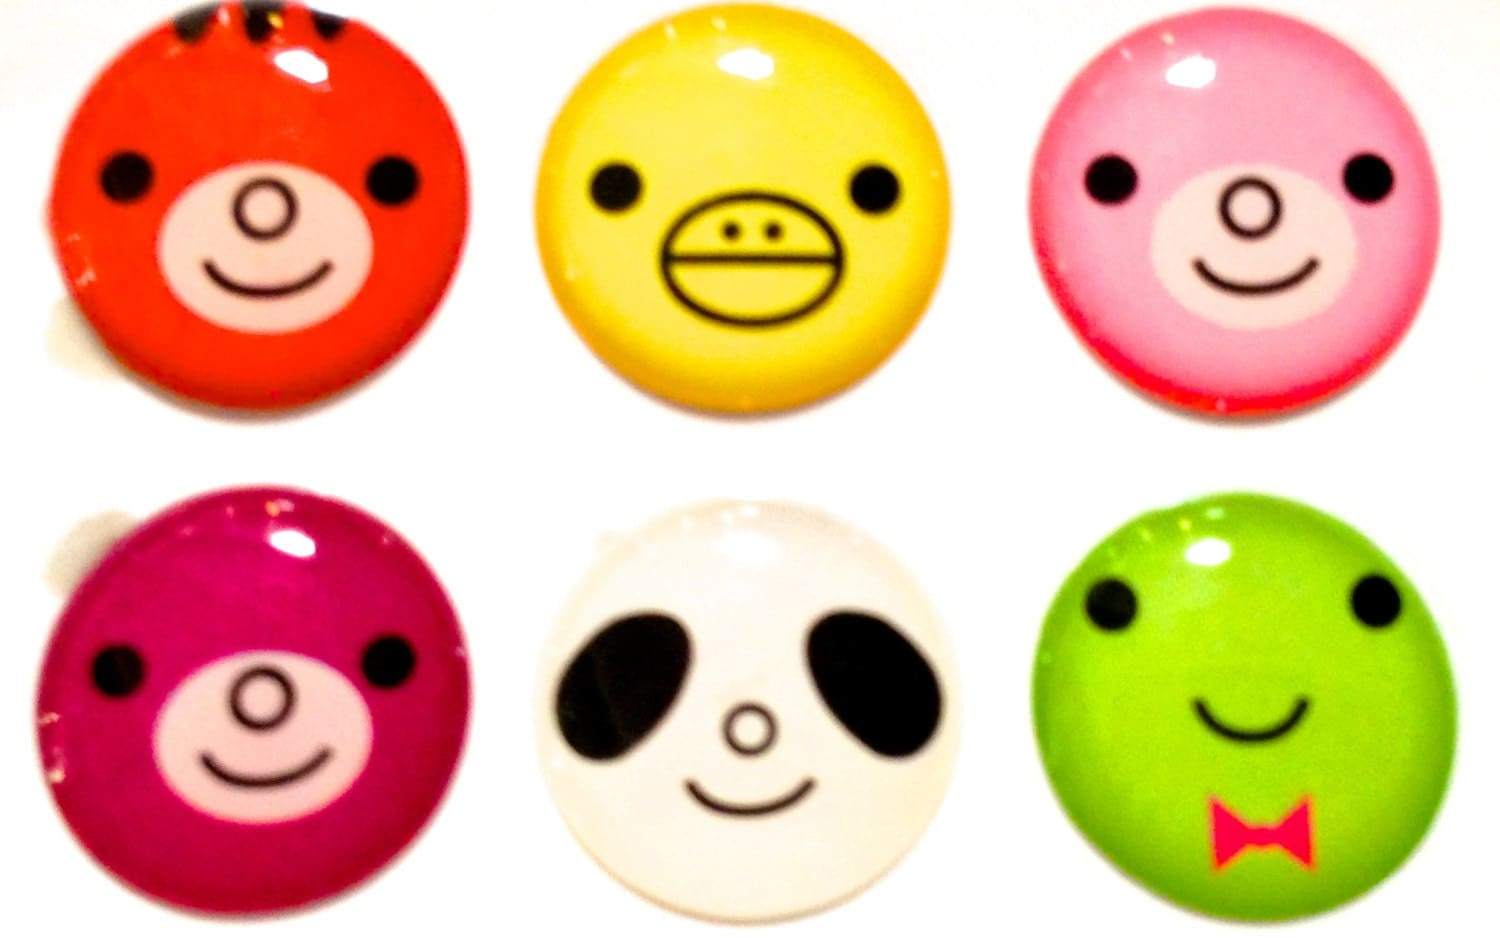 animal faces 6 piece iphone home button stickers for apple